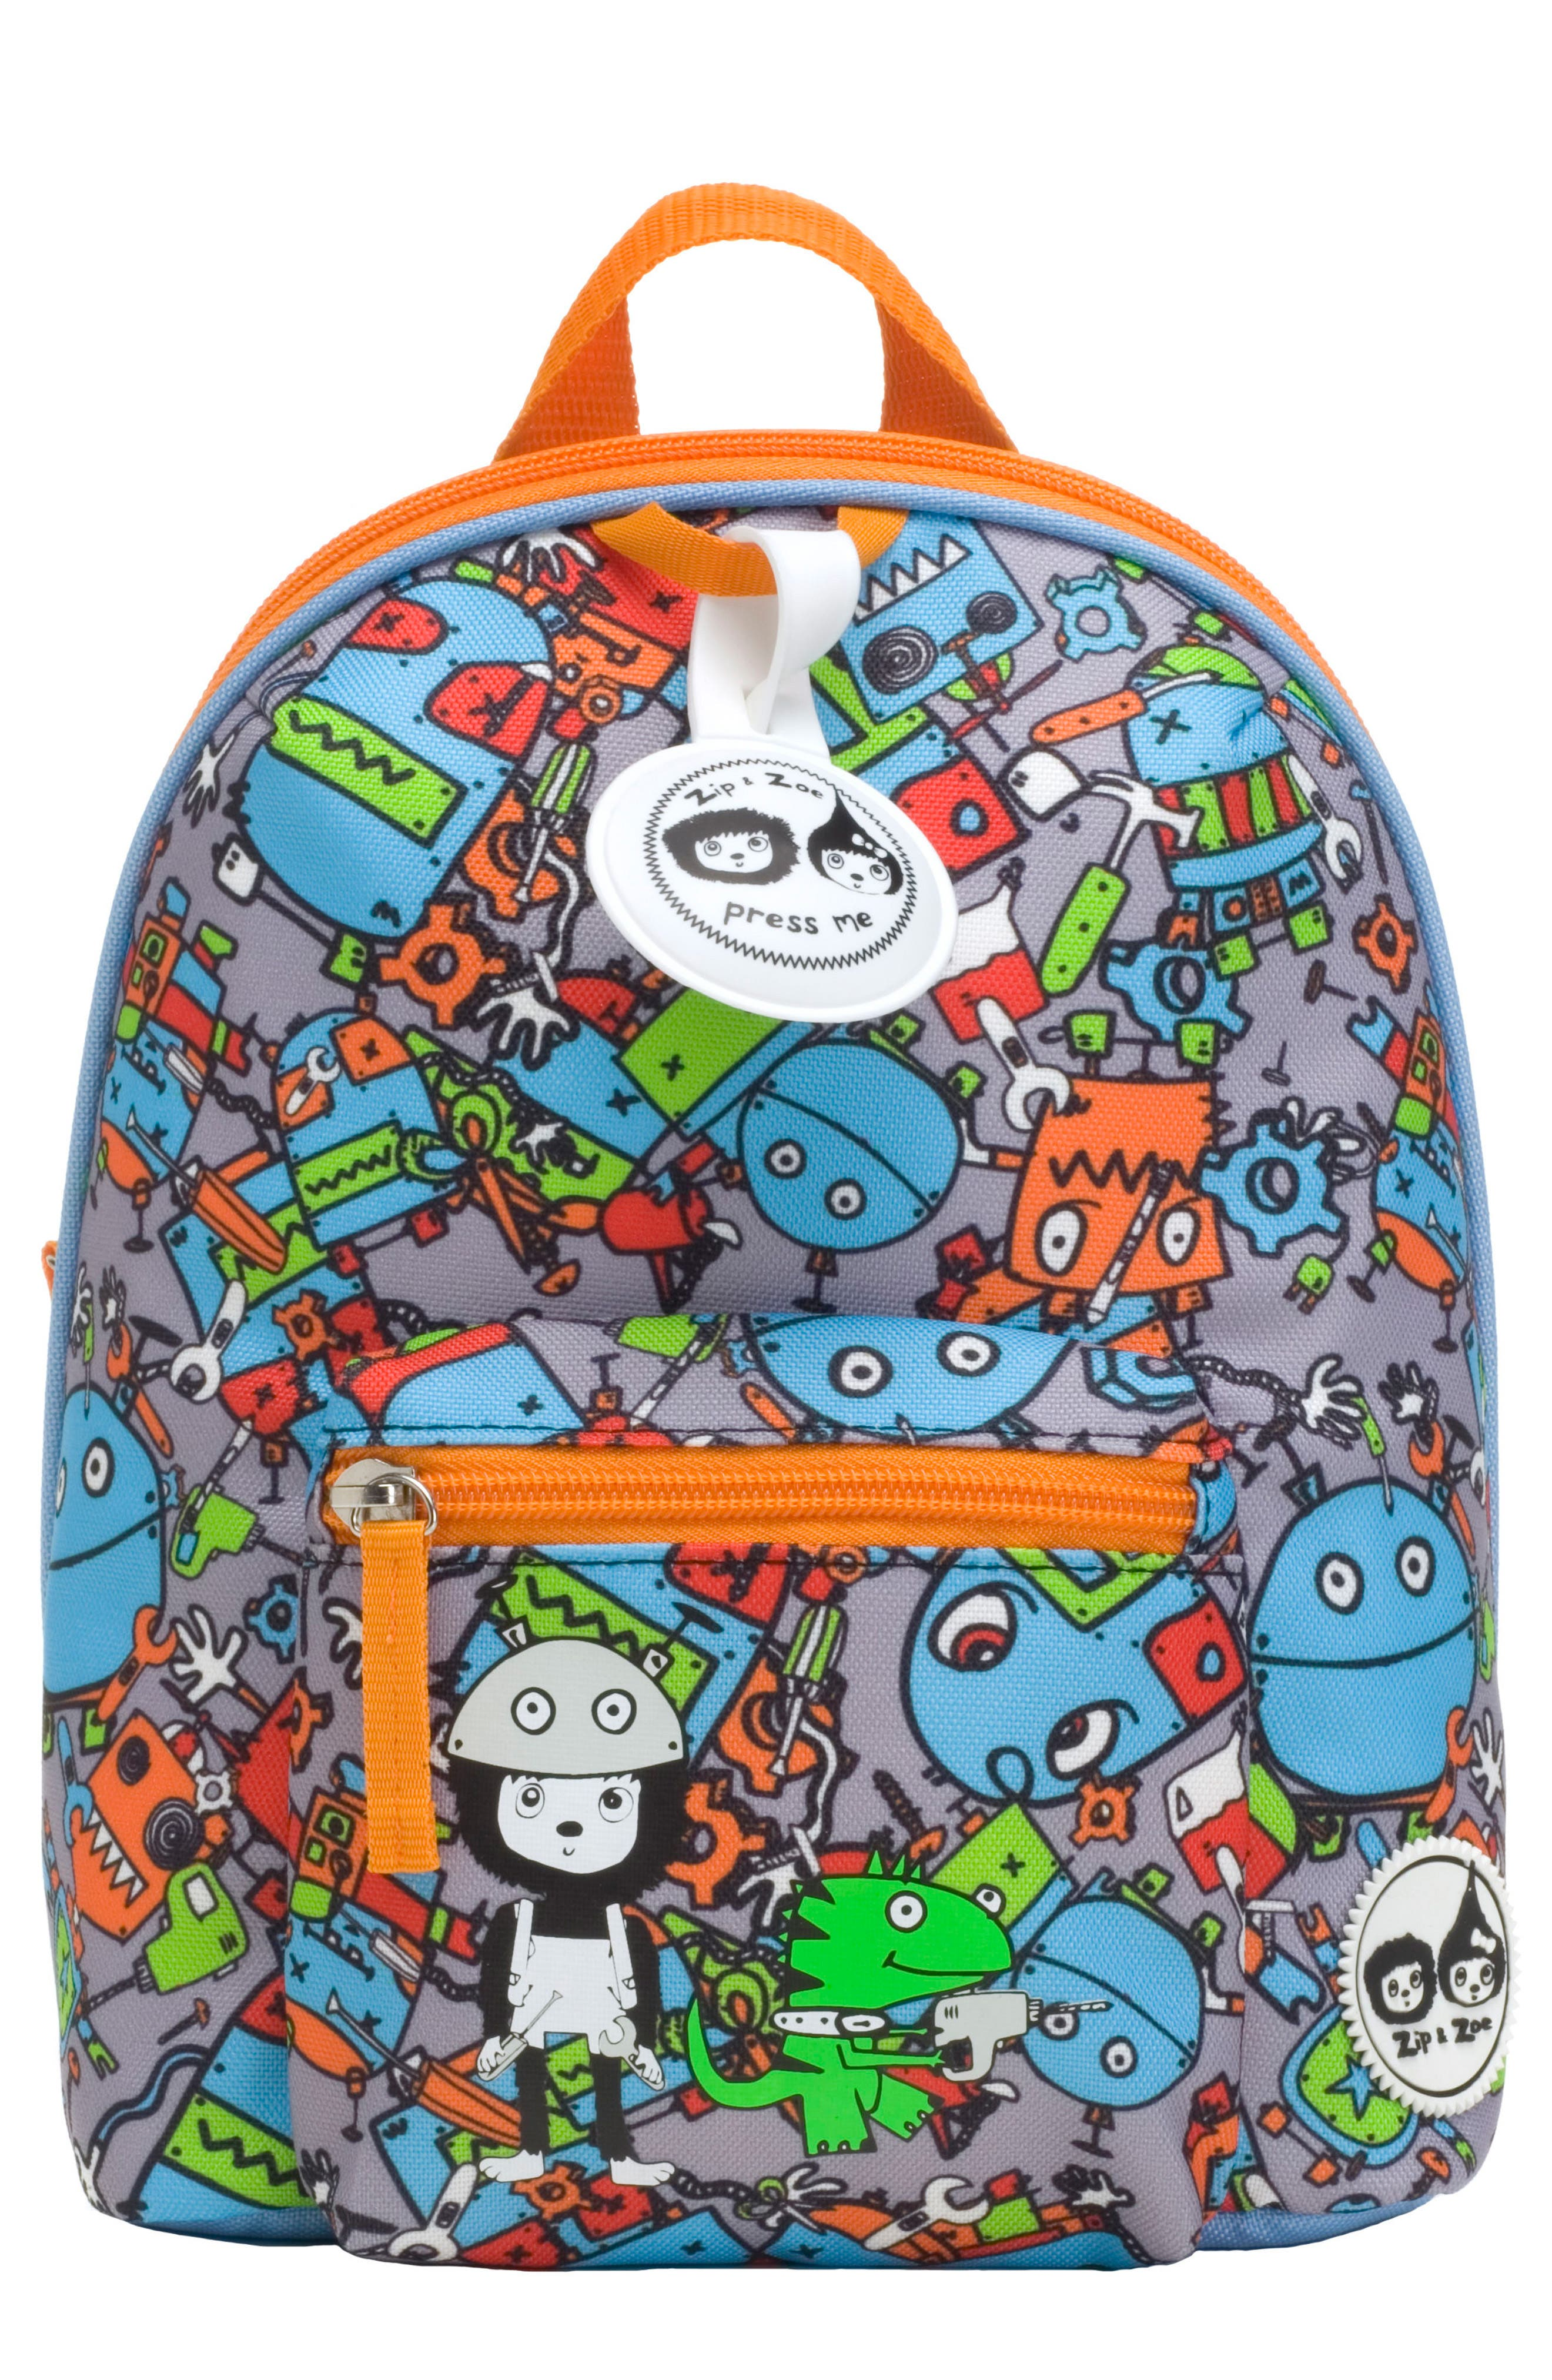 Alternate Image 1 Selected - Babymel Zip & Zoe Robots Mini Backpack (Kids)